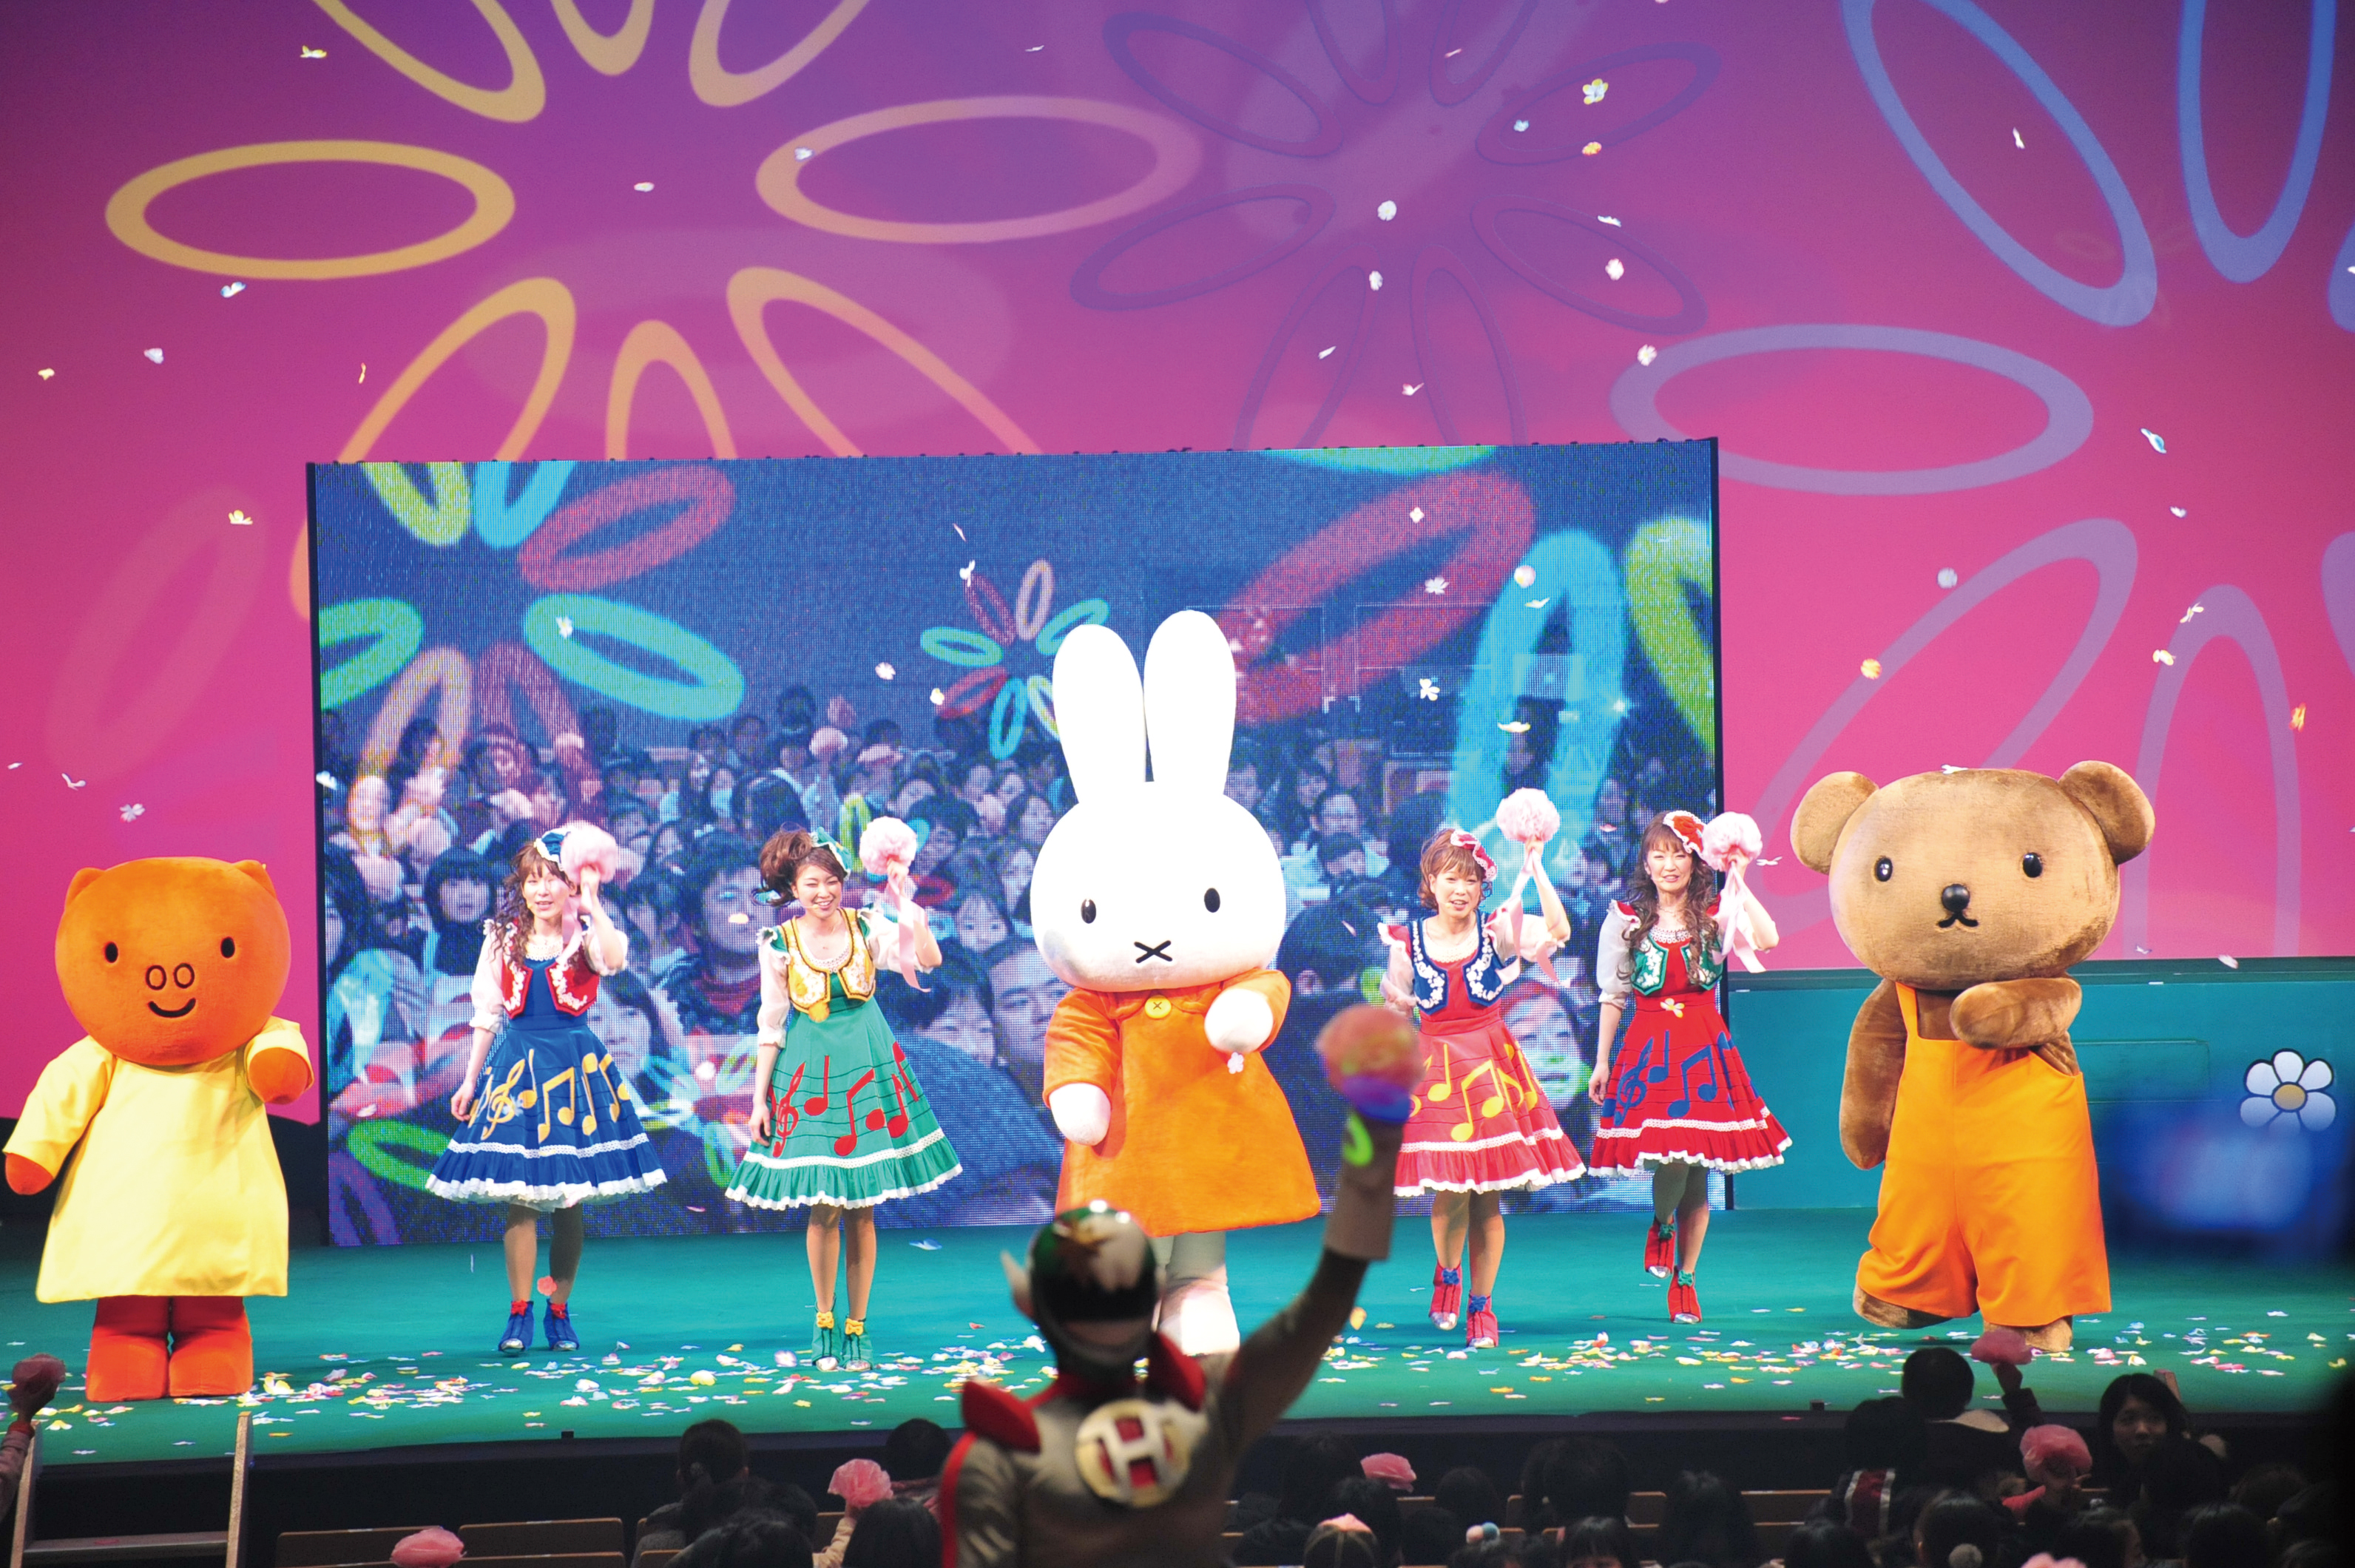 Sunstar holds a Family Musical to raise oral care awareness